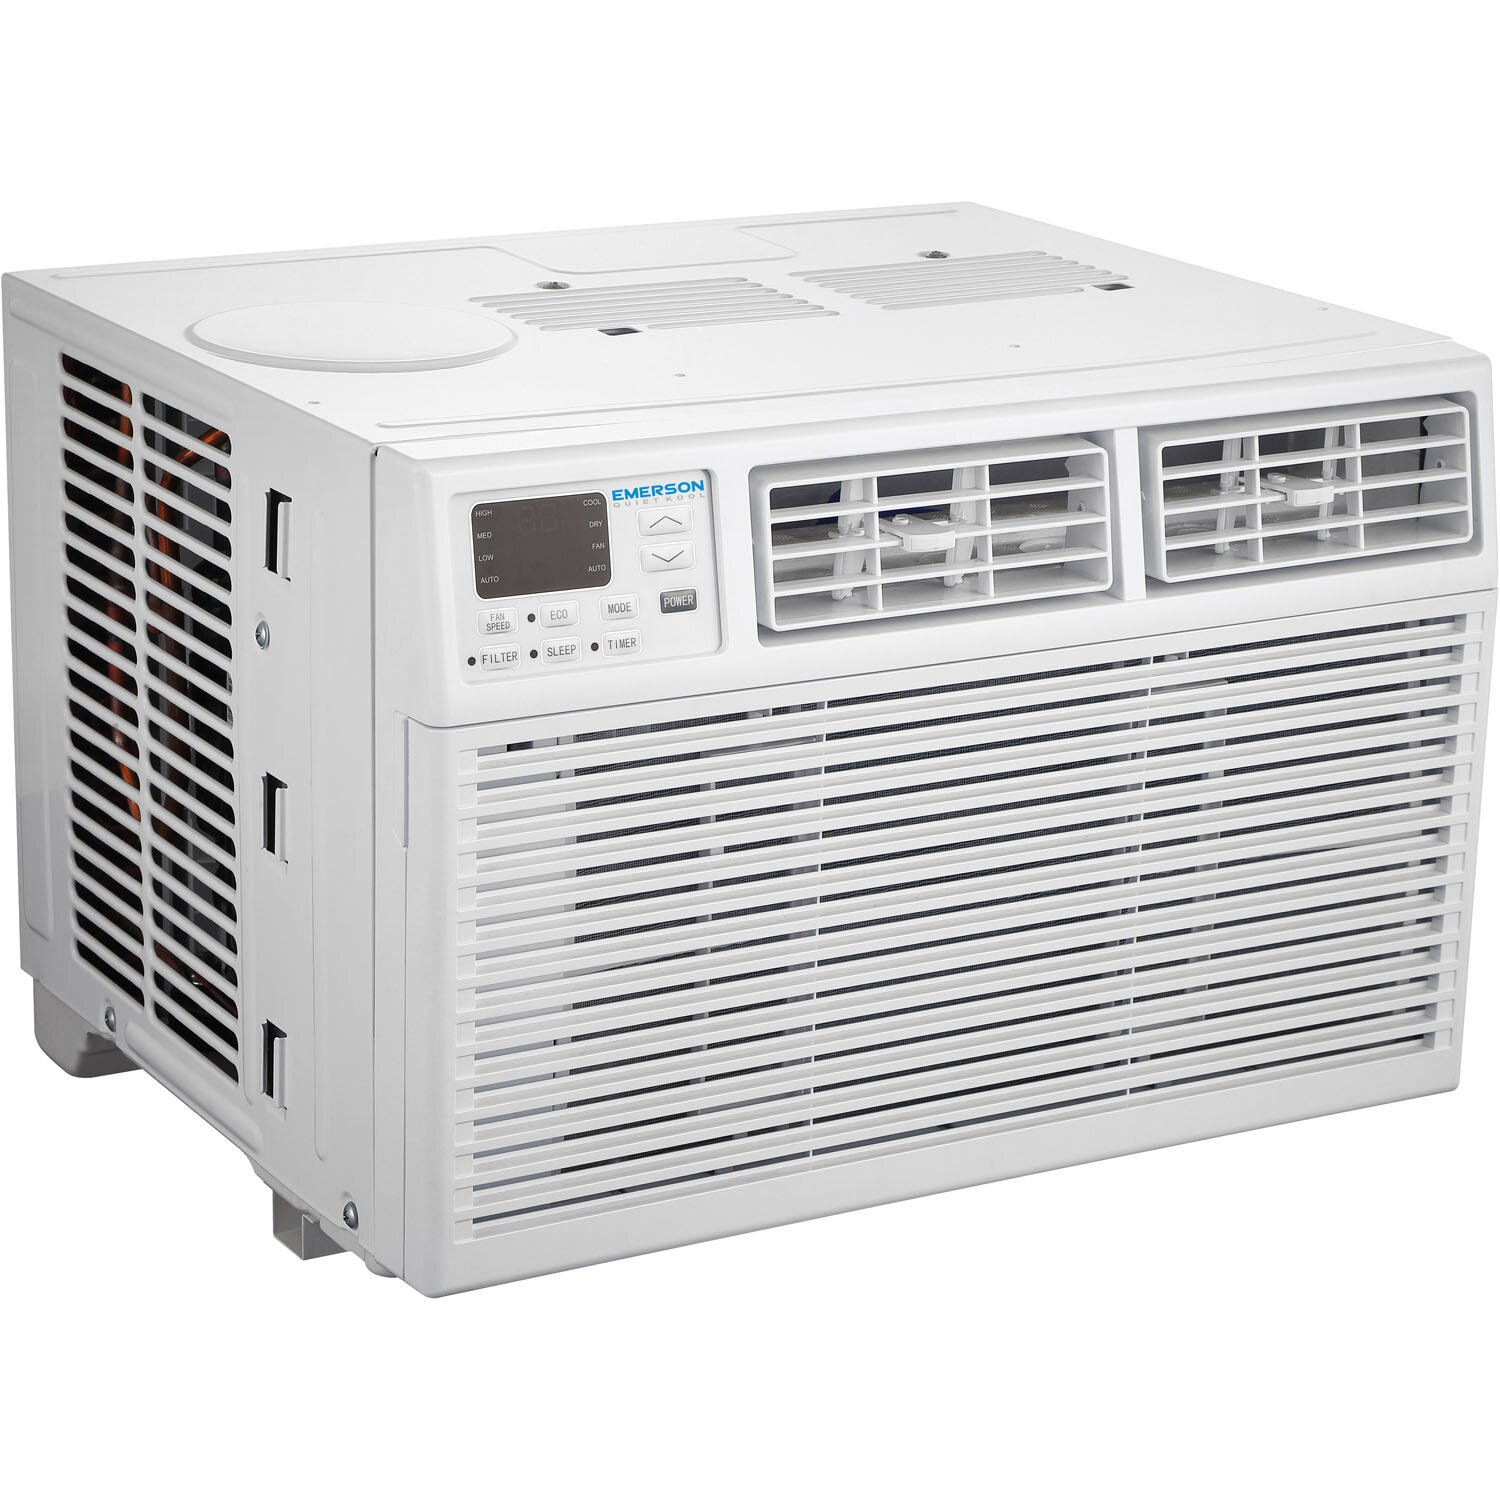 Emerson quiet kool emerson quiet kool 12 000 btu window for 12 000 btu window air conditioner